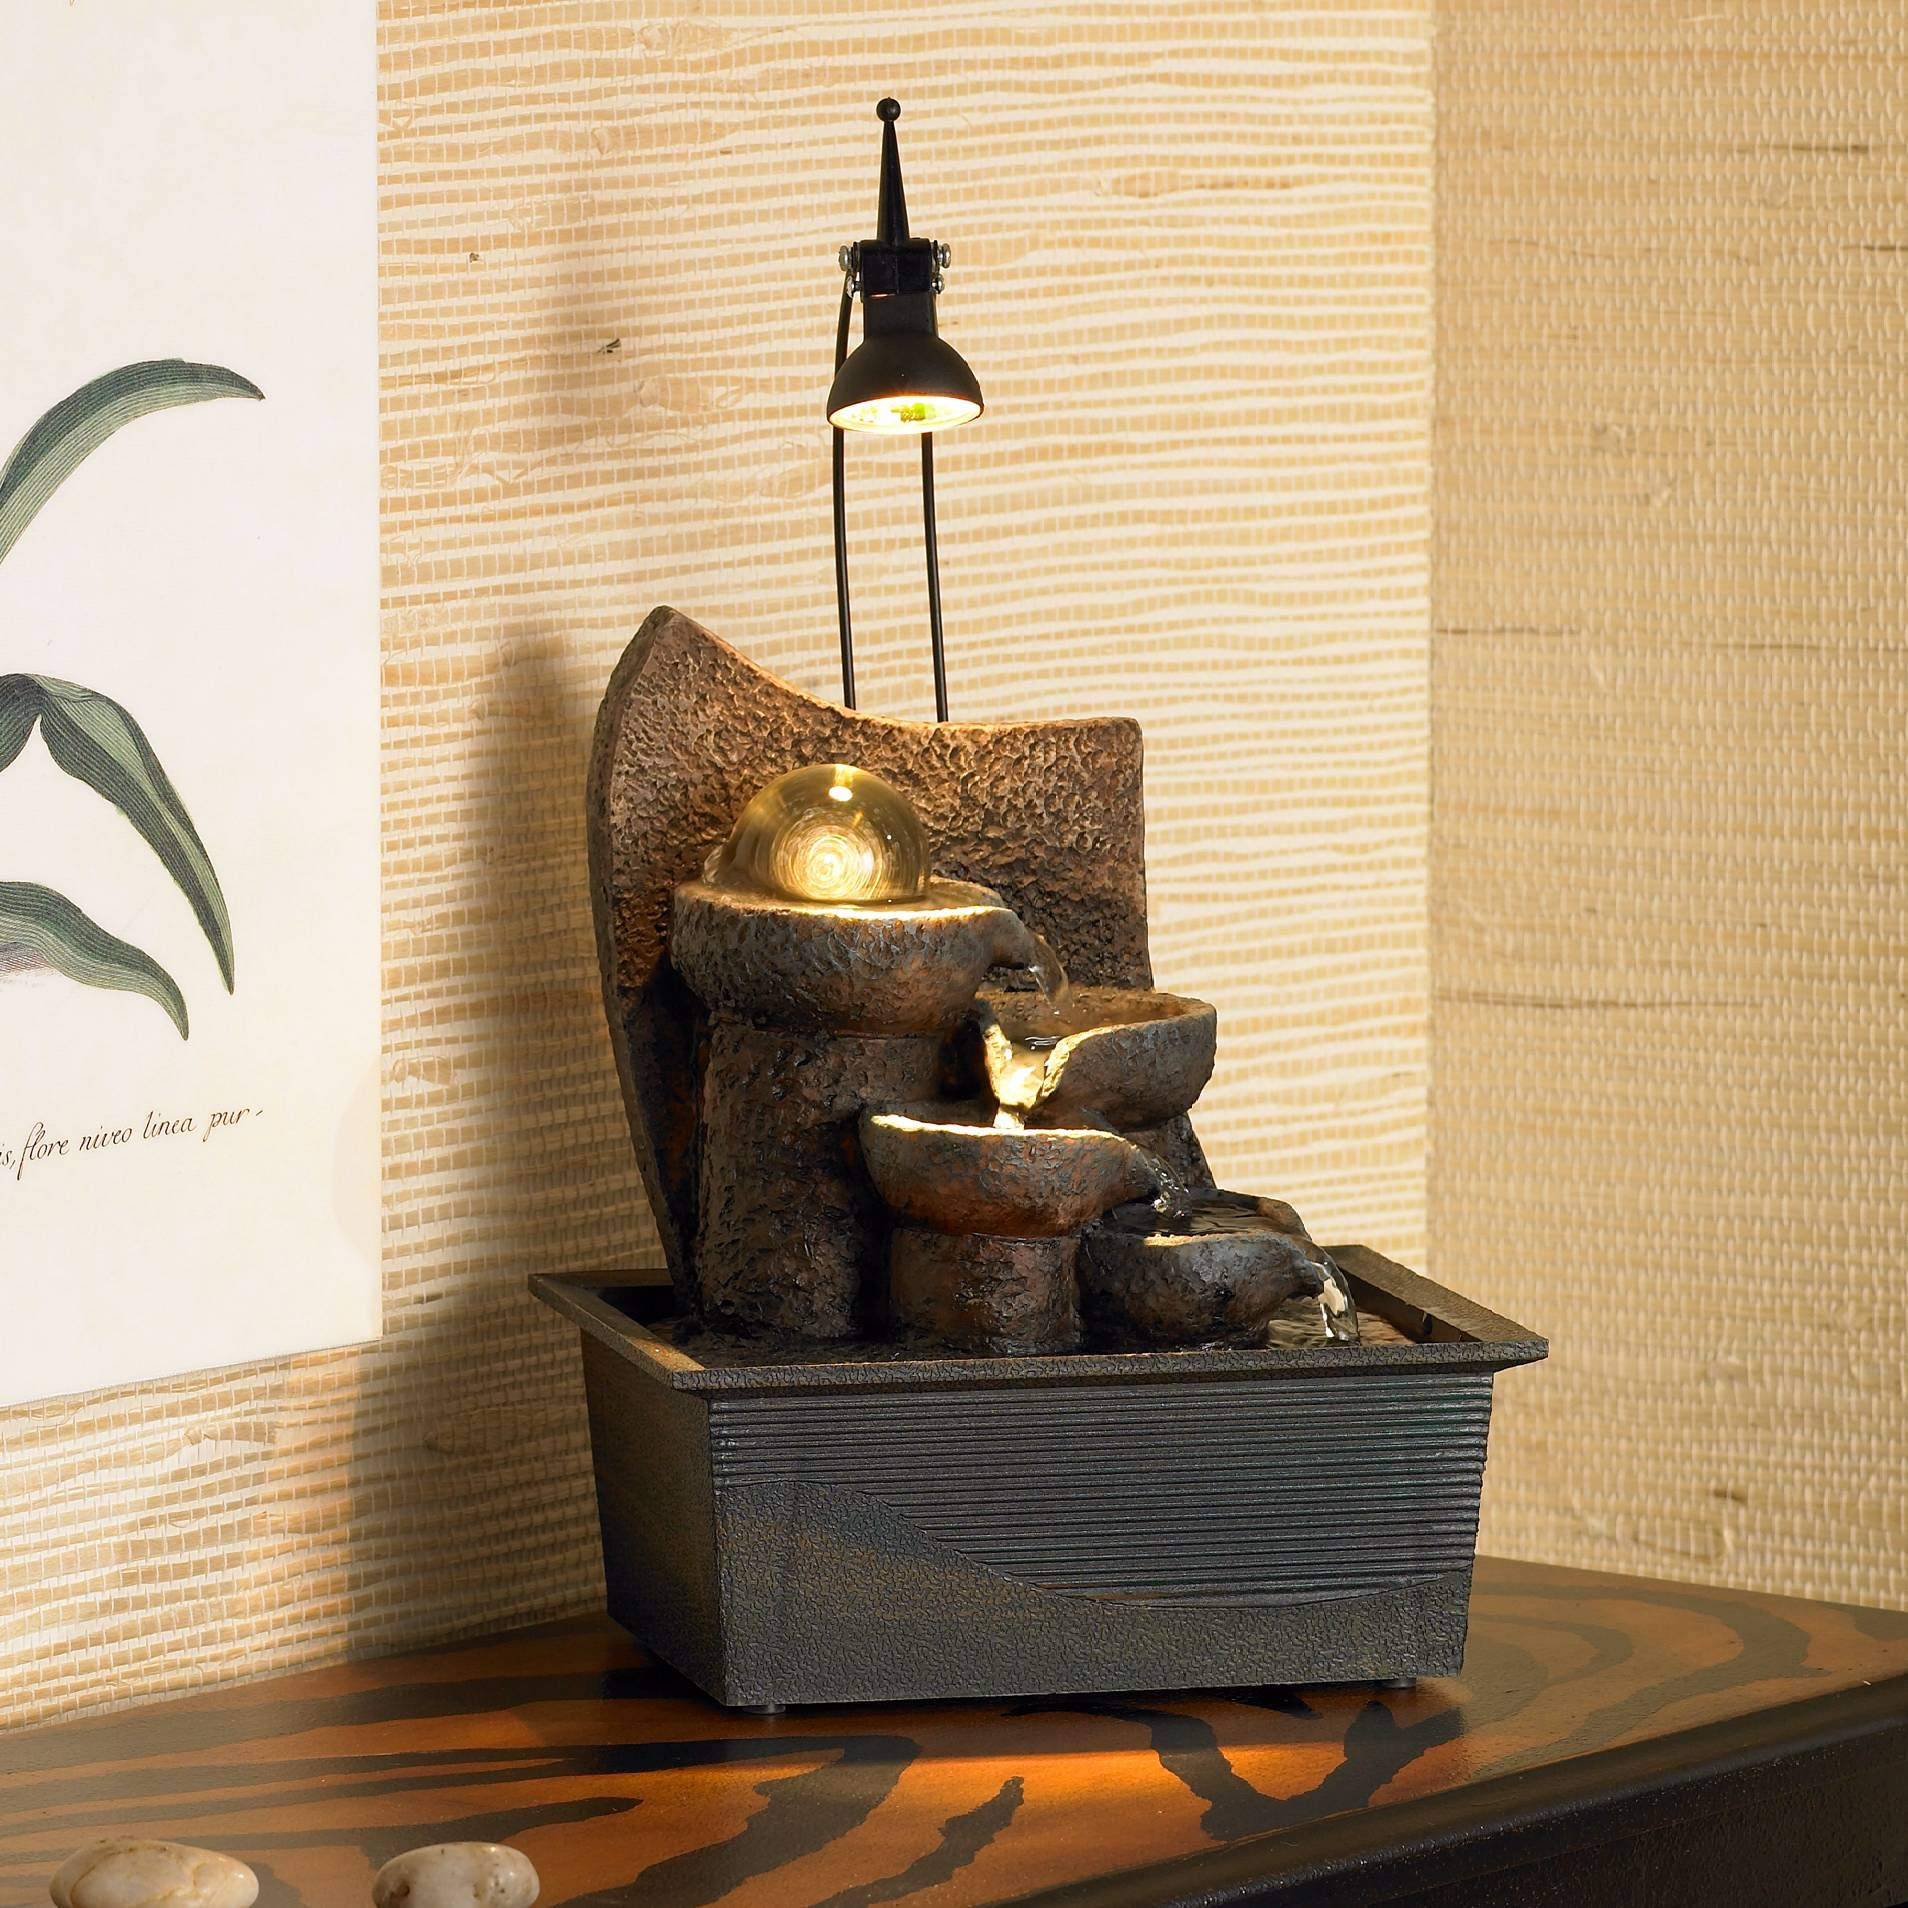 John Timberland Japanese Zen Indoor Table-Top Water Fountain with Light LED 10'' High Cascading for Table Desk Office Home Bedroom by John Timberland